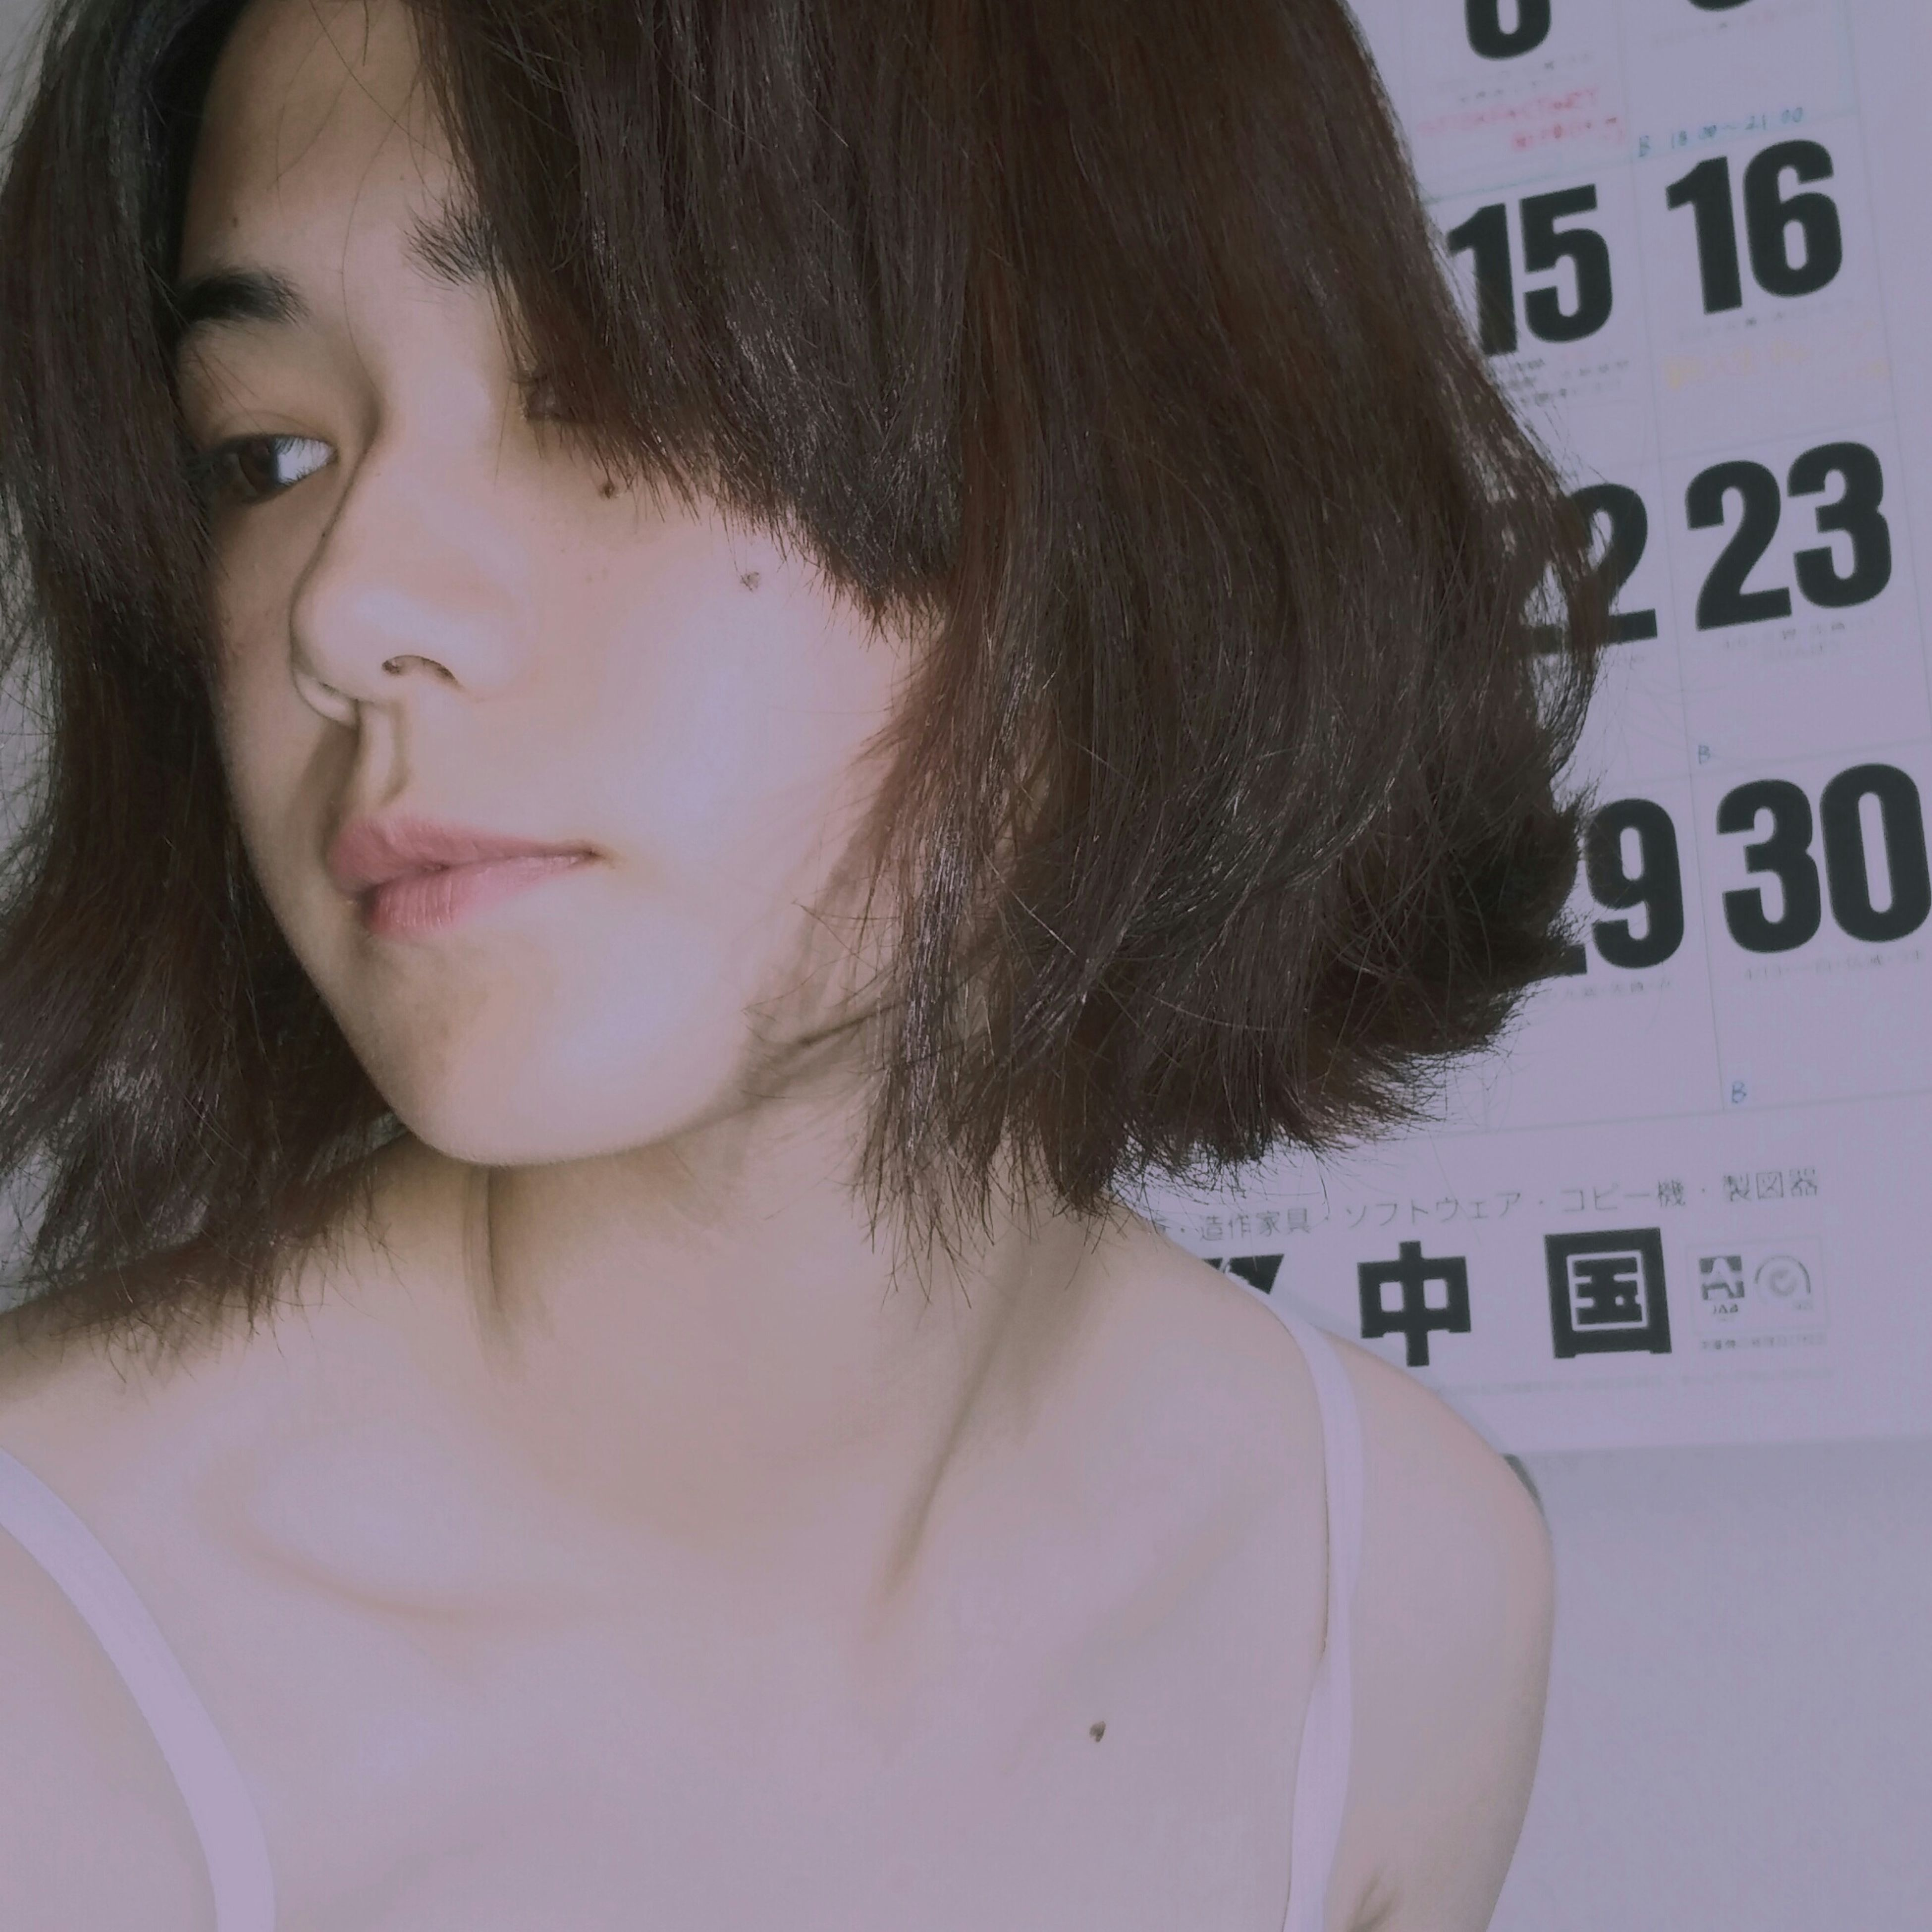 young women, young adult, indoors, person, lifestyles, headshot, long hair, leisure activity, close-up, front view, communication, black hair, human hair, human face, brown hair, focus on foreground, blond hair